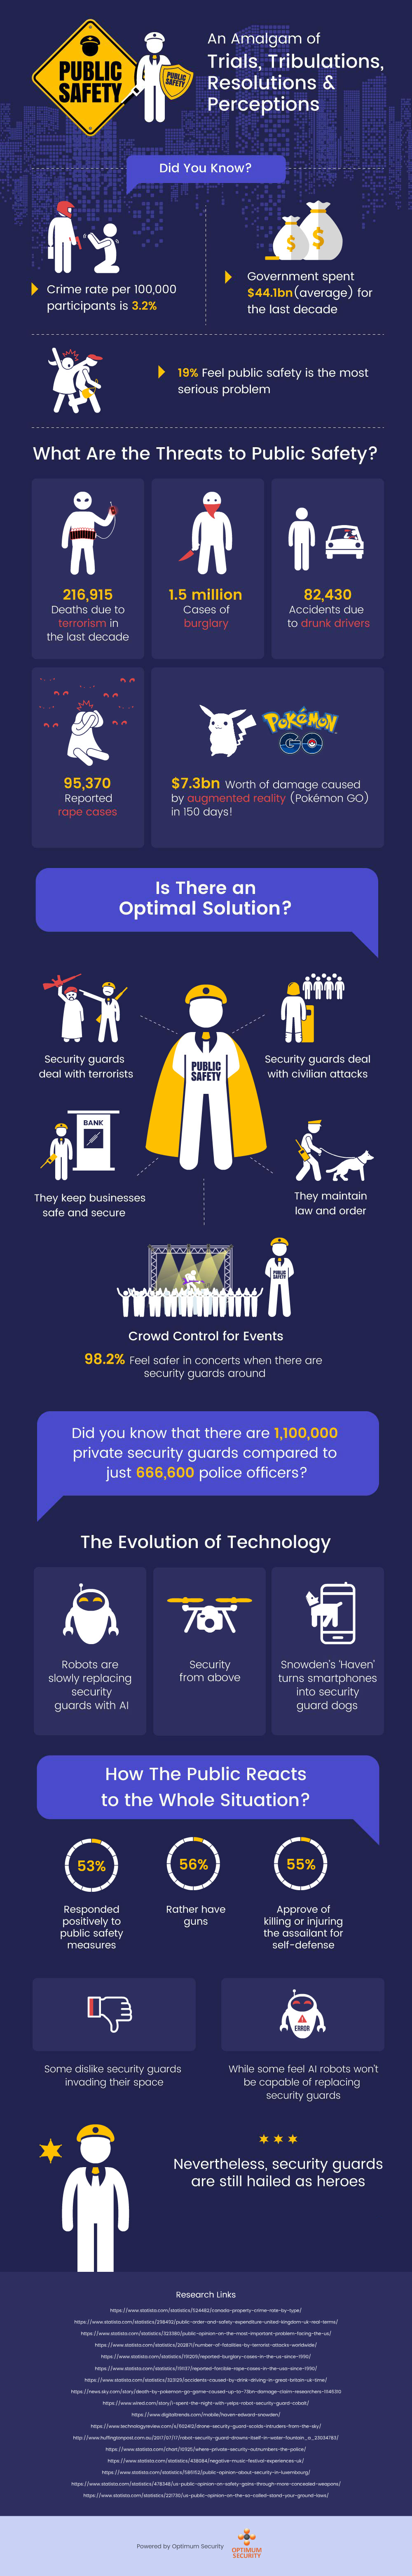 safety-in-numbers-infographic-plaza